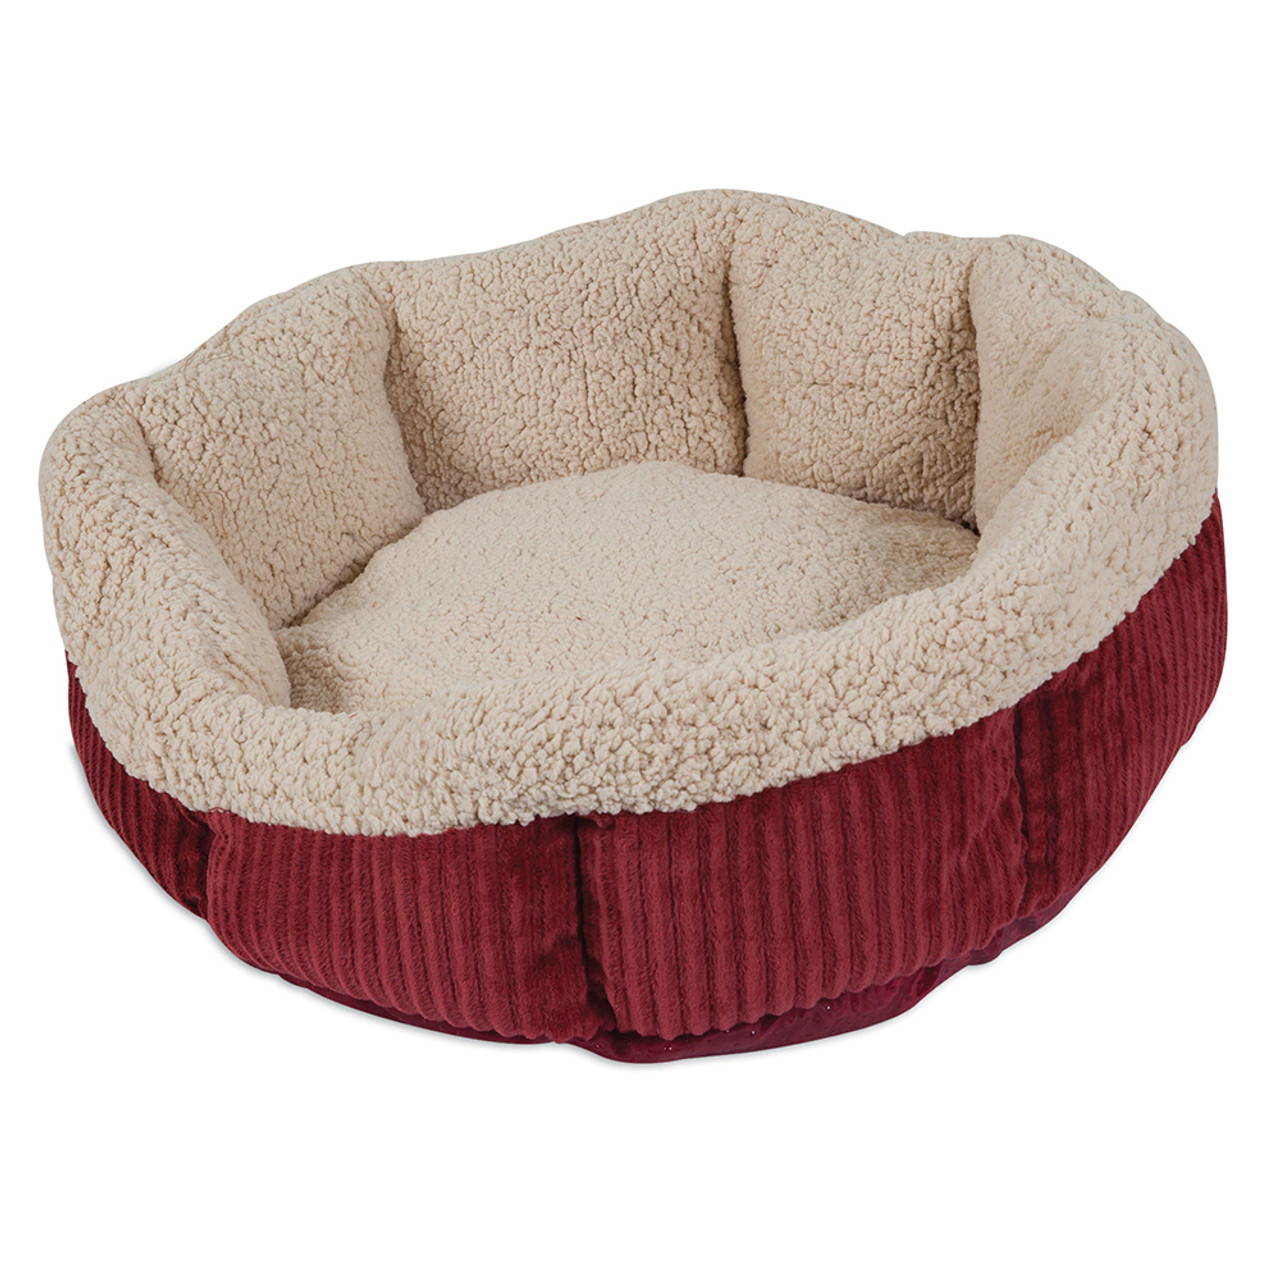 Aspen Pet Self-Warming Corduroy Round Pet Bed